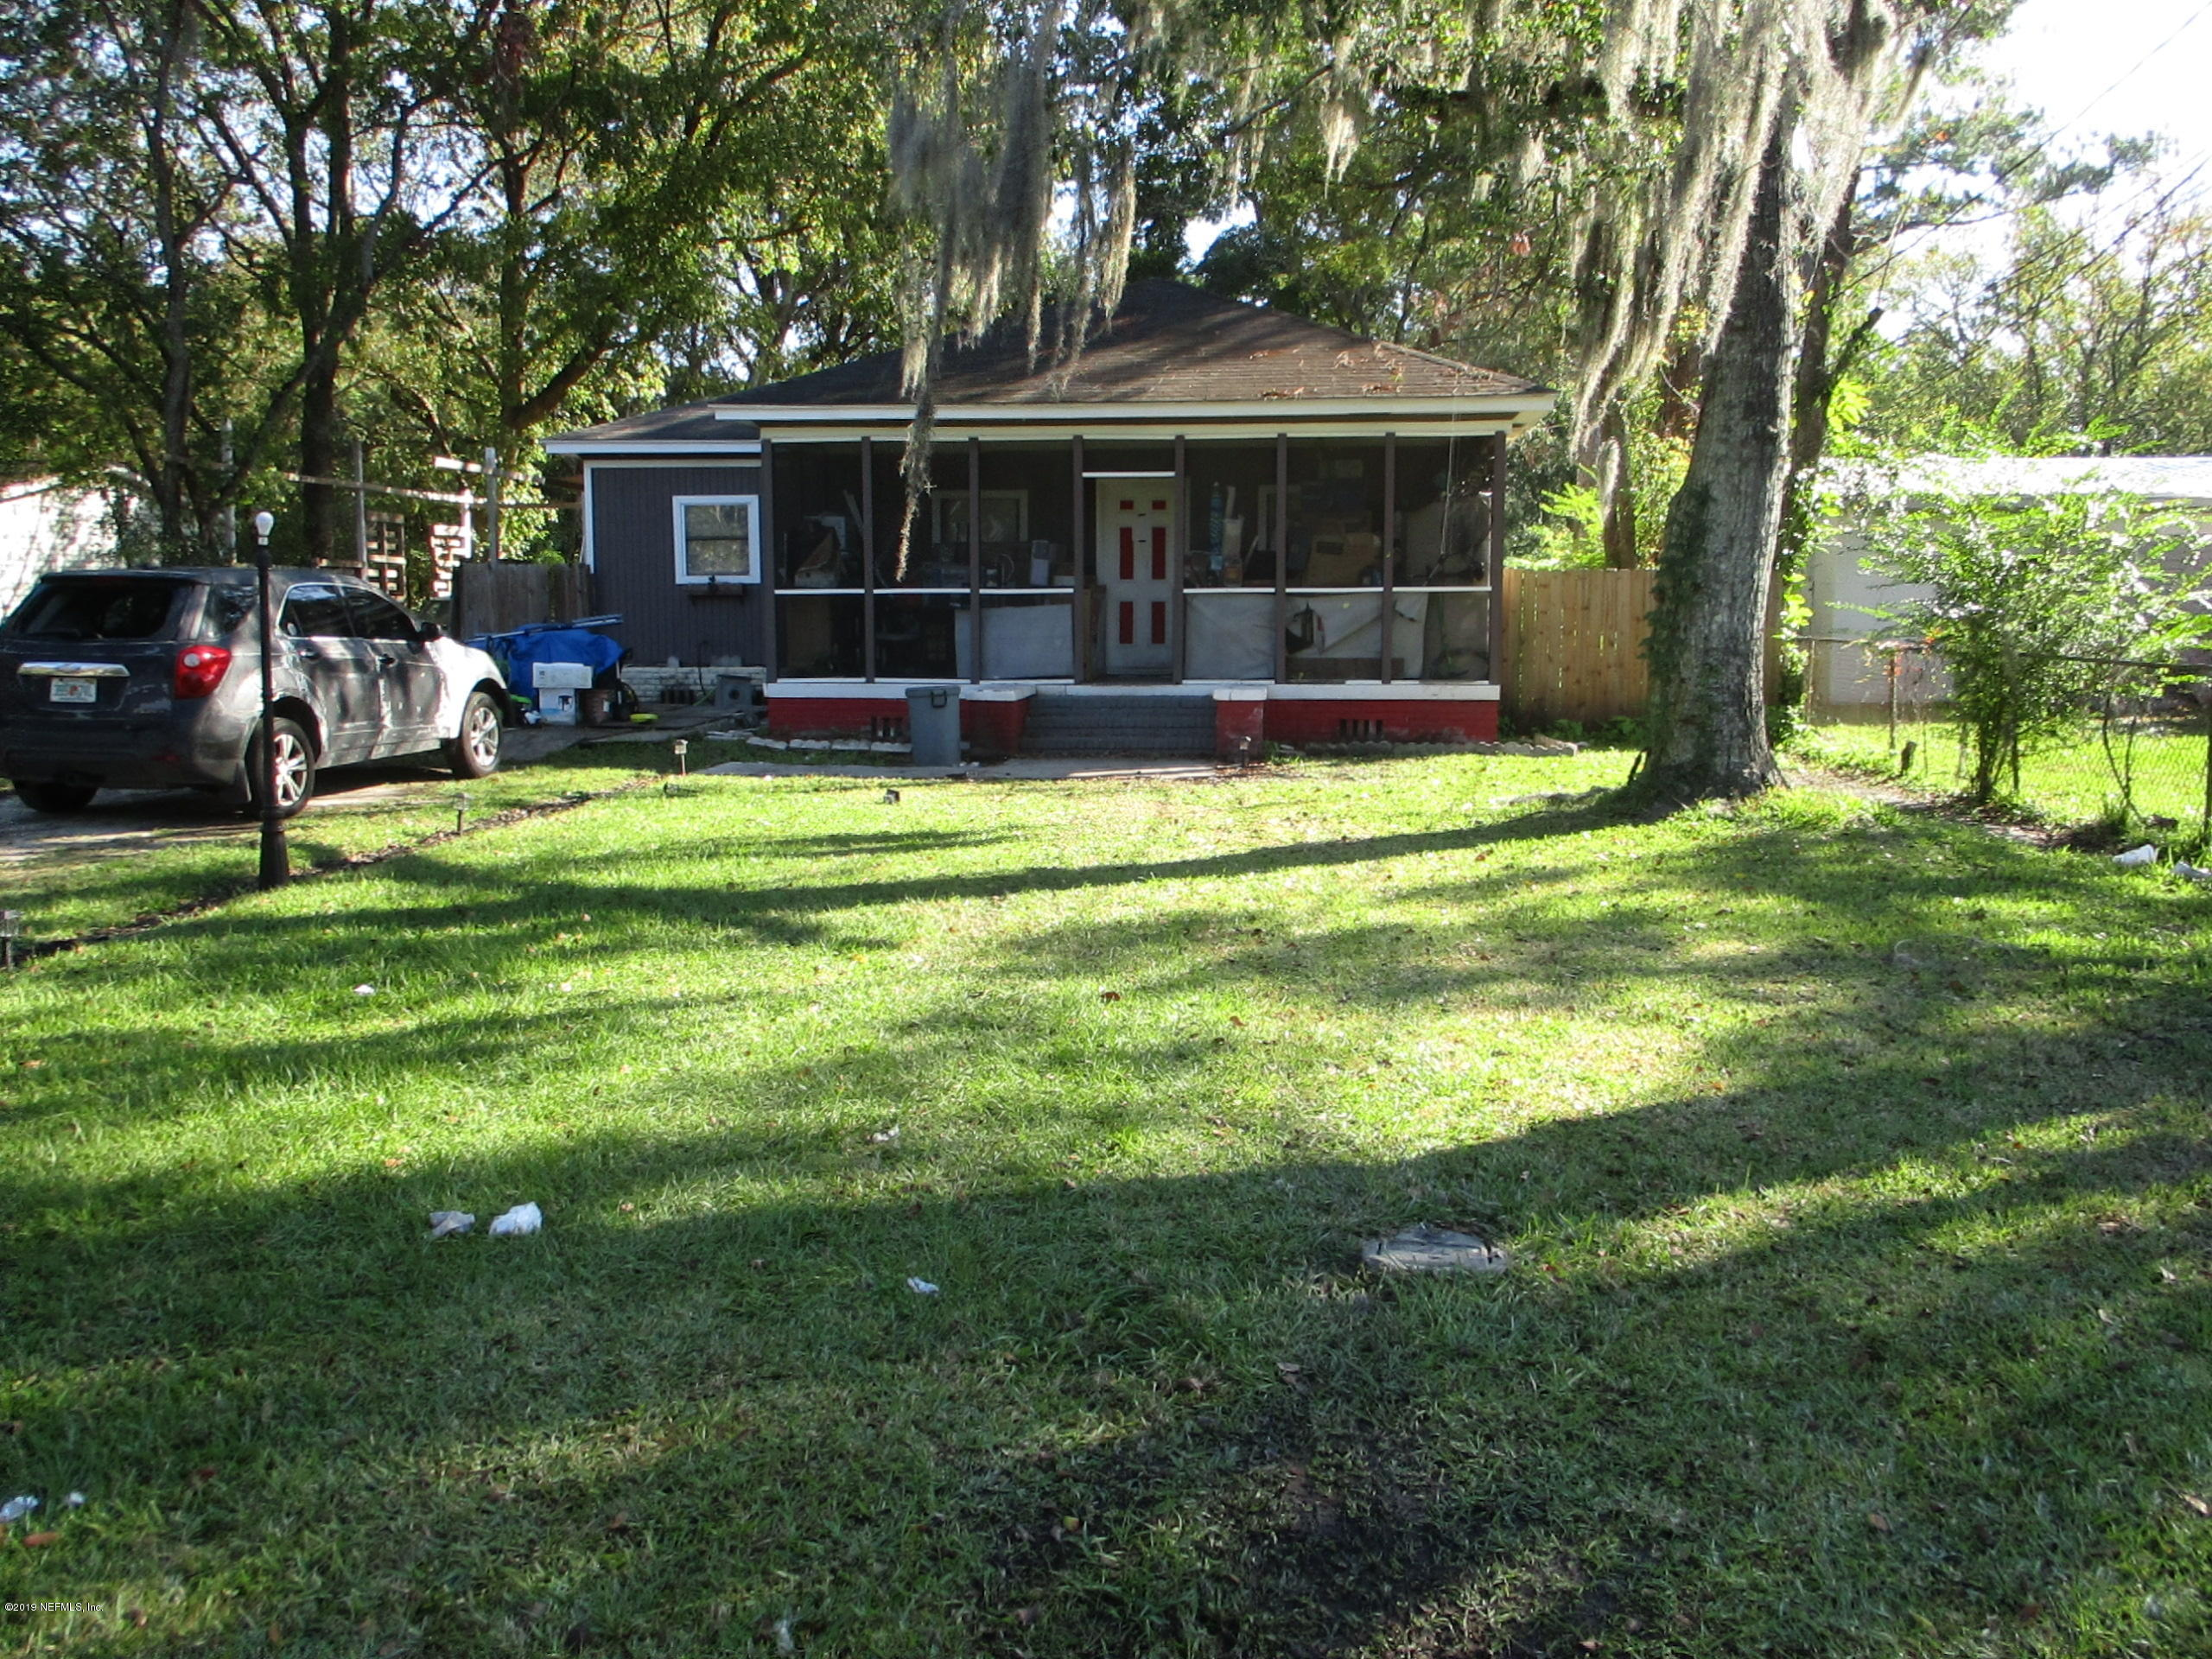 227 ST ANDREWS, JACKSONVILLE, FLORIDA 32254, 3 Bedrooms Bedrooms, ,1 BathroomBathrooms,Residential,For sale,ST ANDREWS,1025103